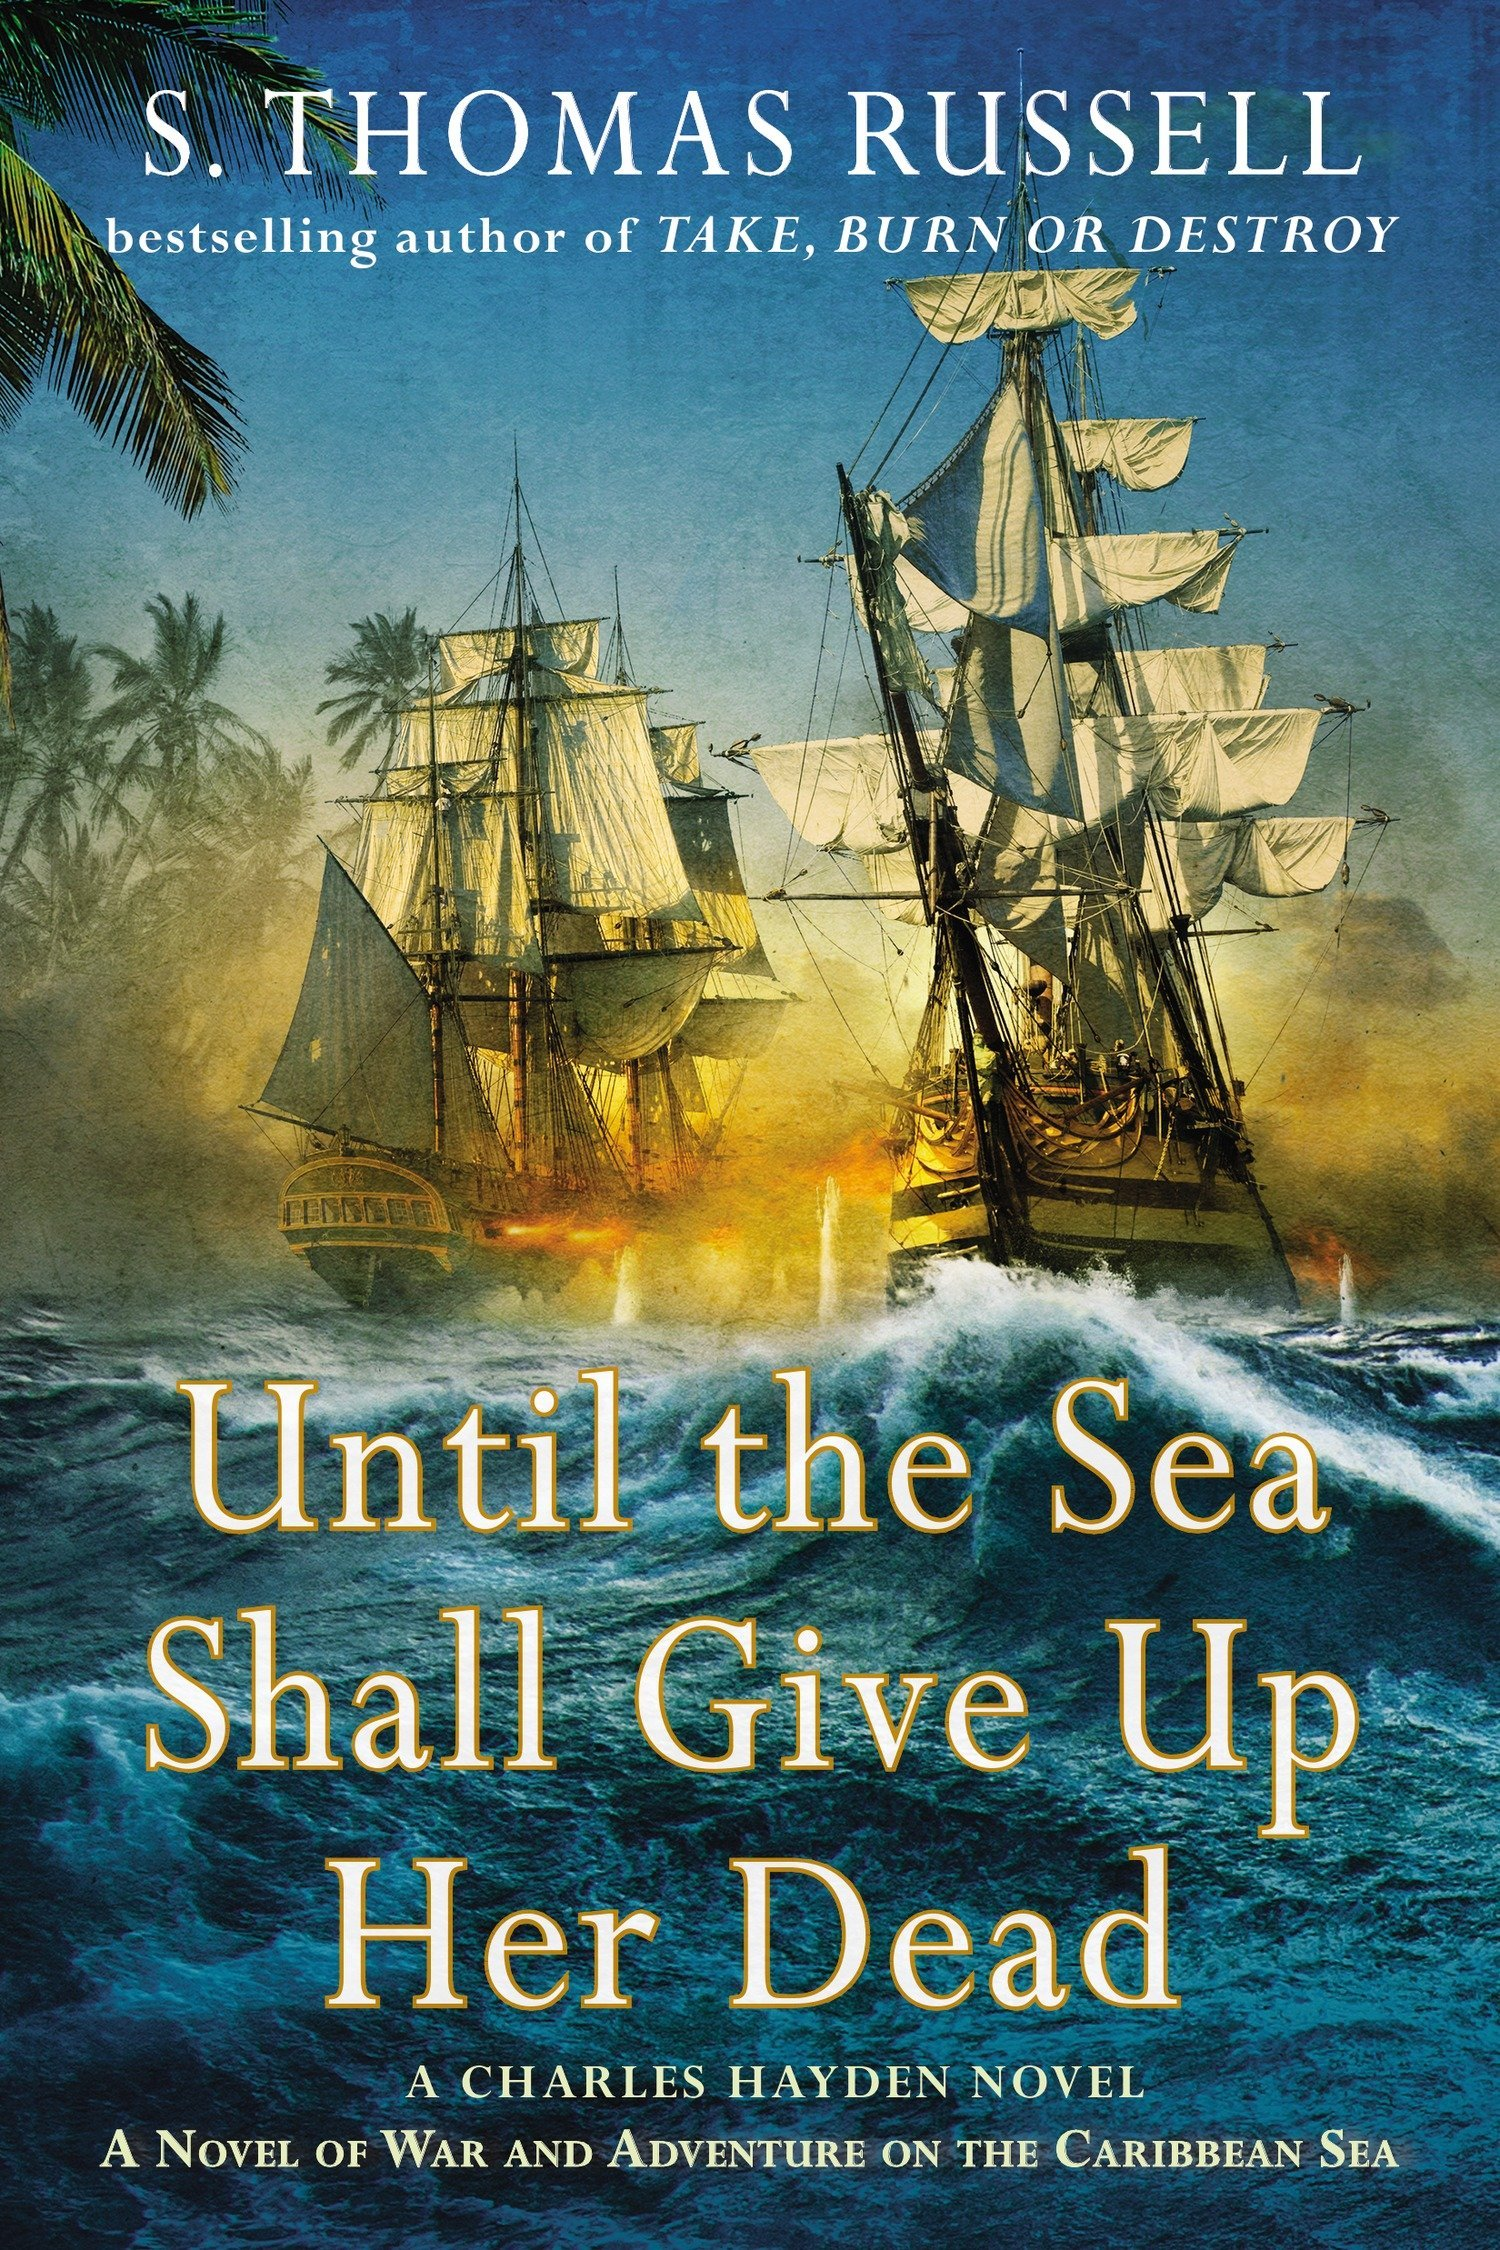 Until The Sea Shall Give Up Her Dead Adventures Of Fbw Russel Button Down Shirt Navy Charles Hayden 9780425277928 S Thomas Russell Books